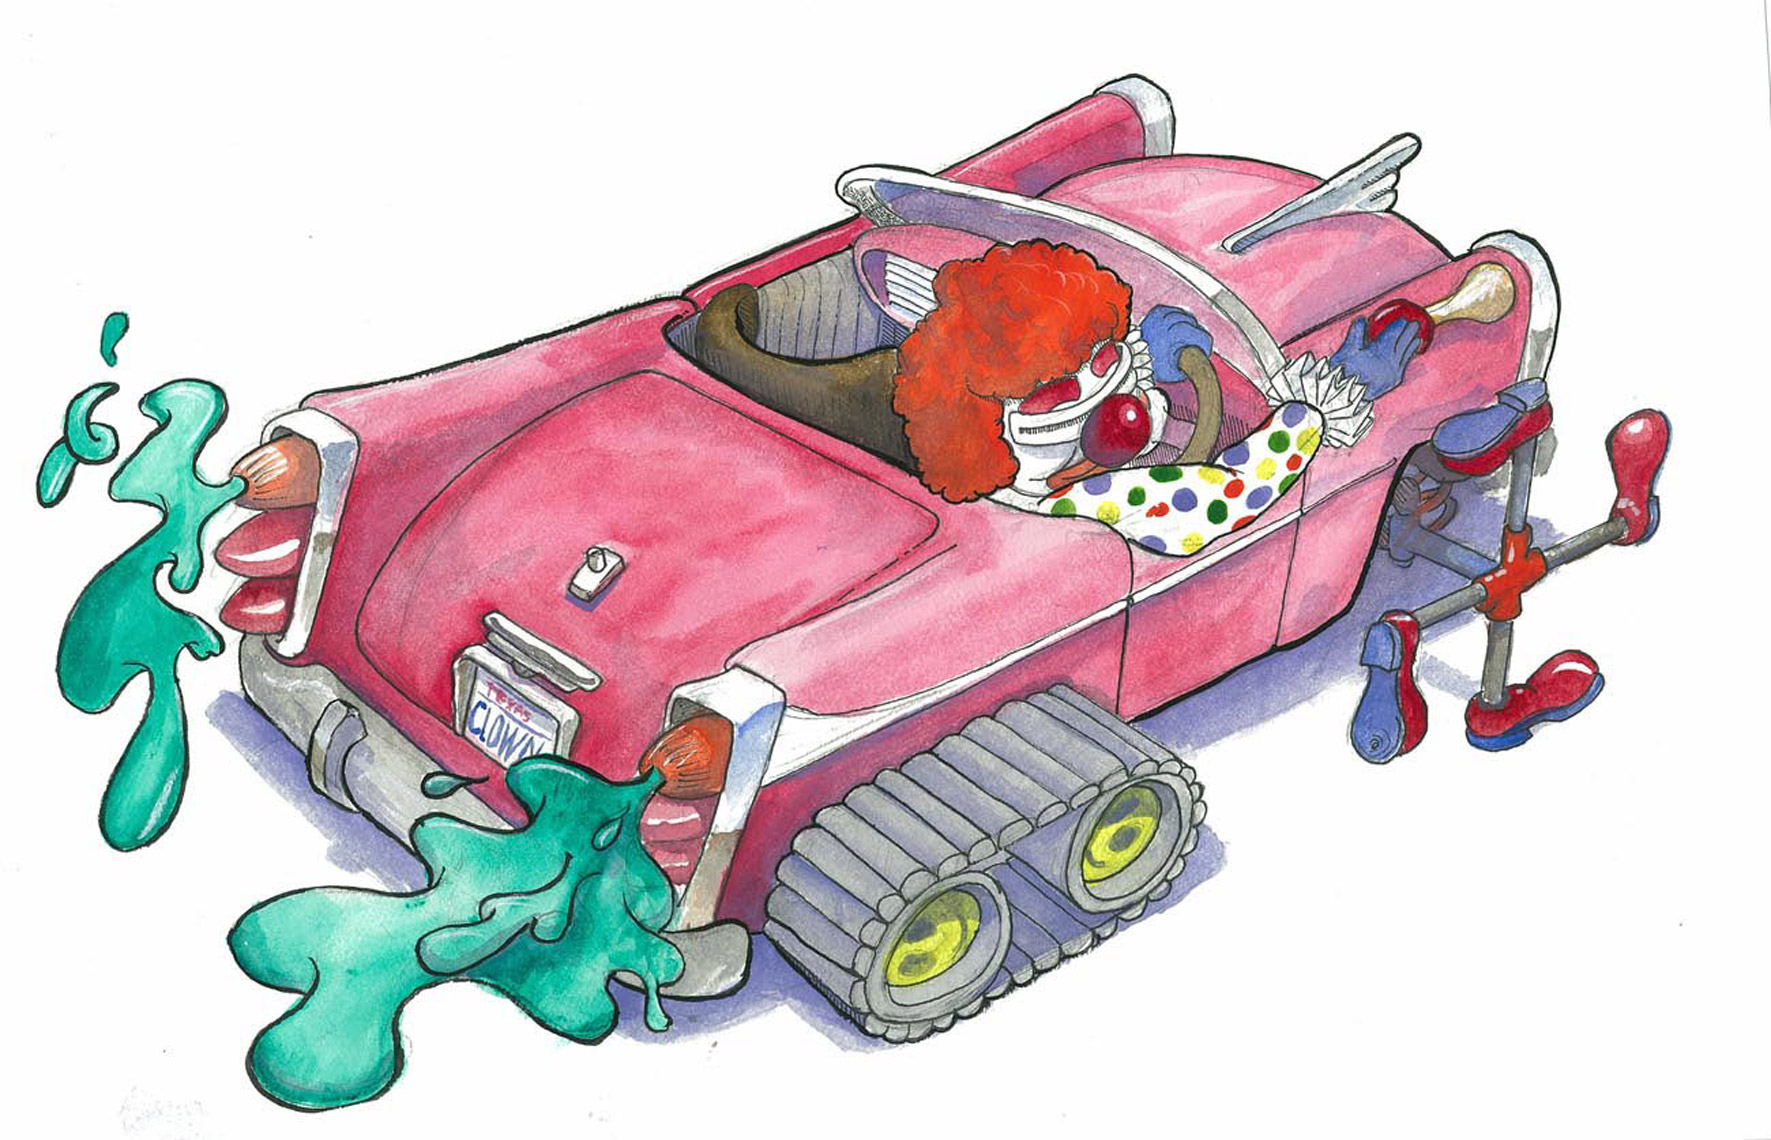 Watercolor_Clowncar